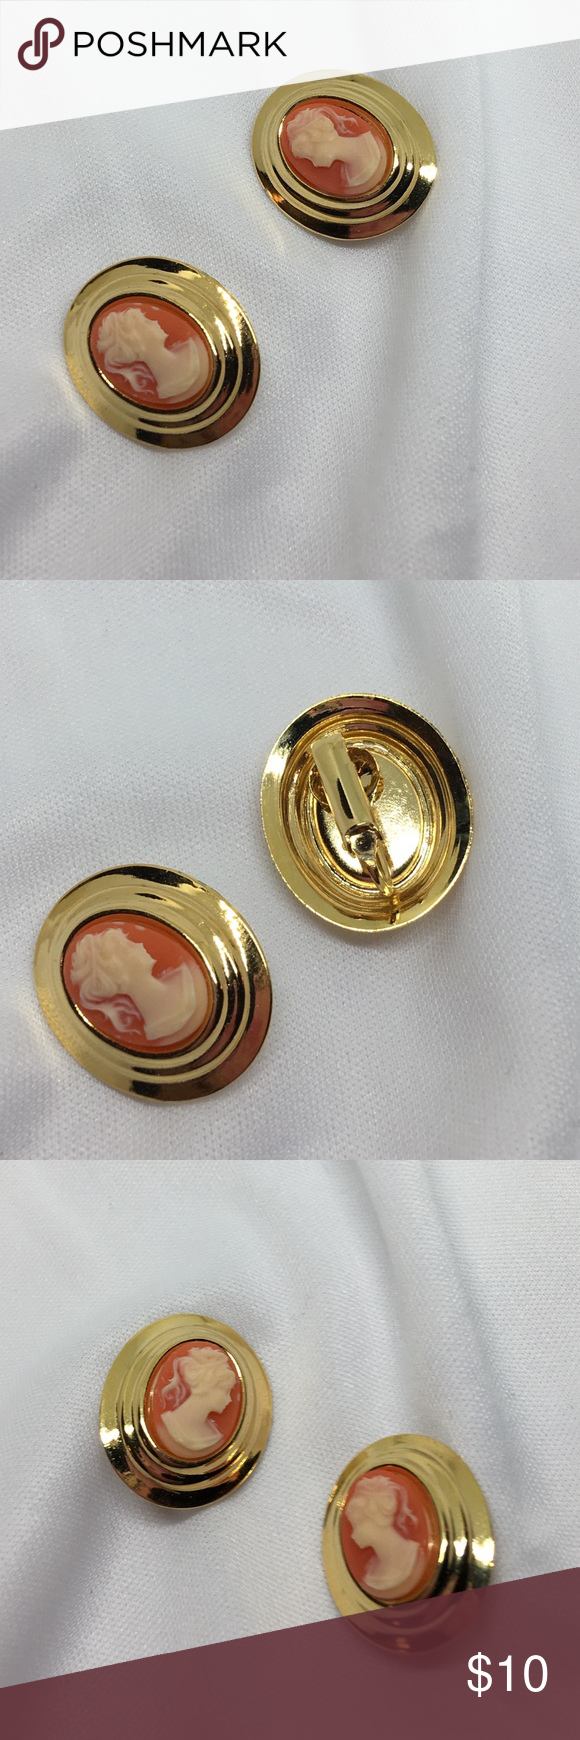 """🆕Vintage Gold Cameo Clip Earrings Vintage clips in bright gold with resin carnelian cameos. In excellent condition, like new! Each 1"""" long. Vintage Jewelry Earrings"""